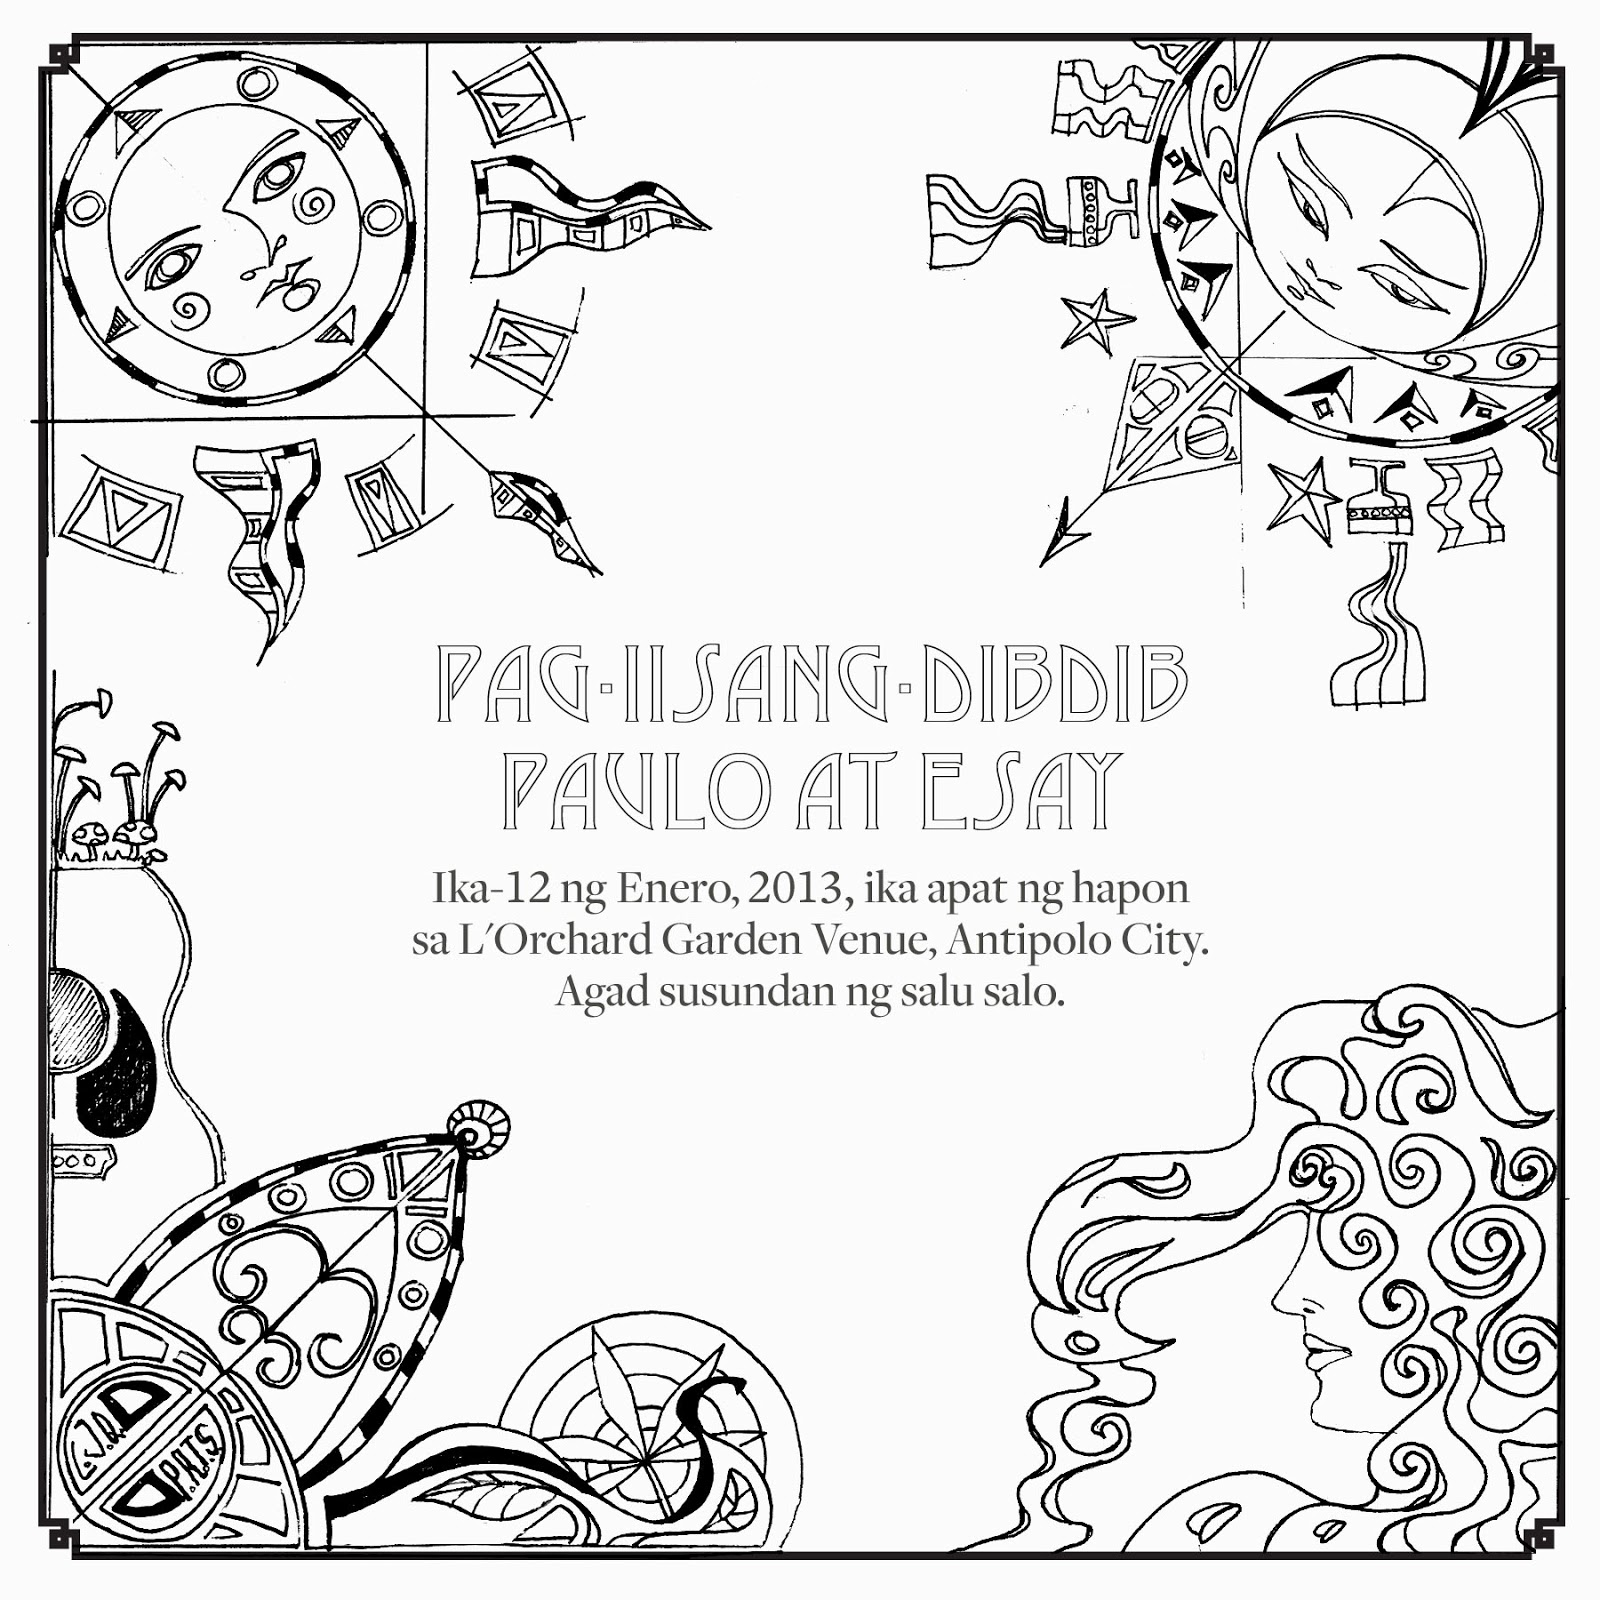 Practical Pinay: Our Tagalog Wedding Invitation